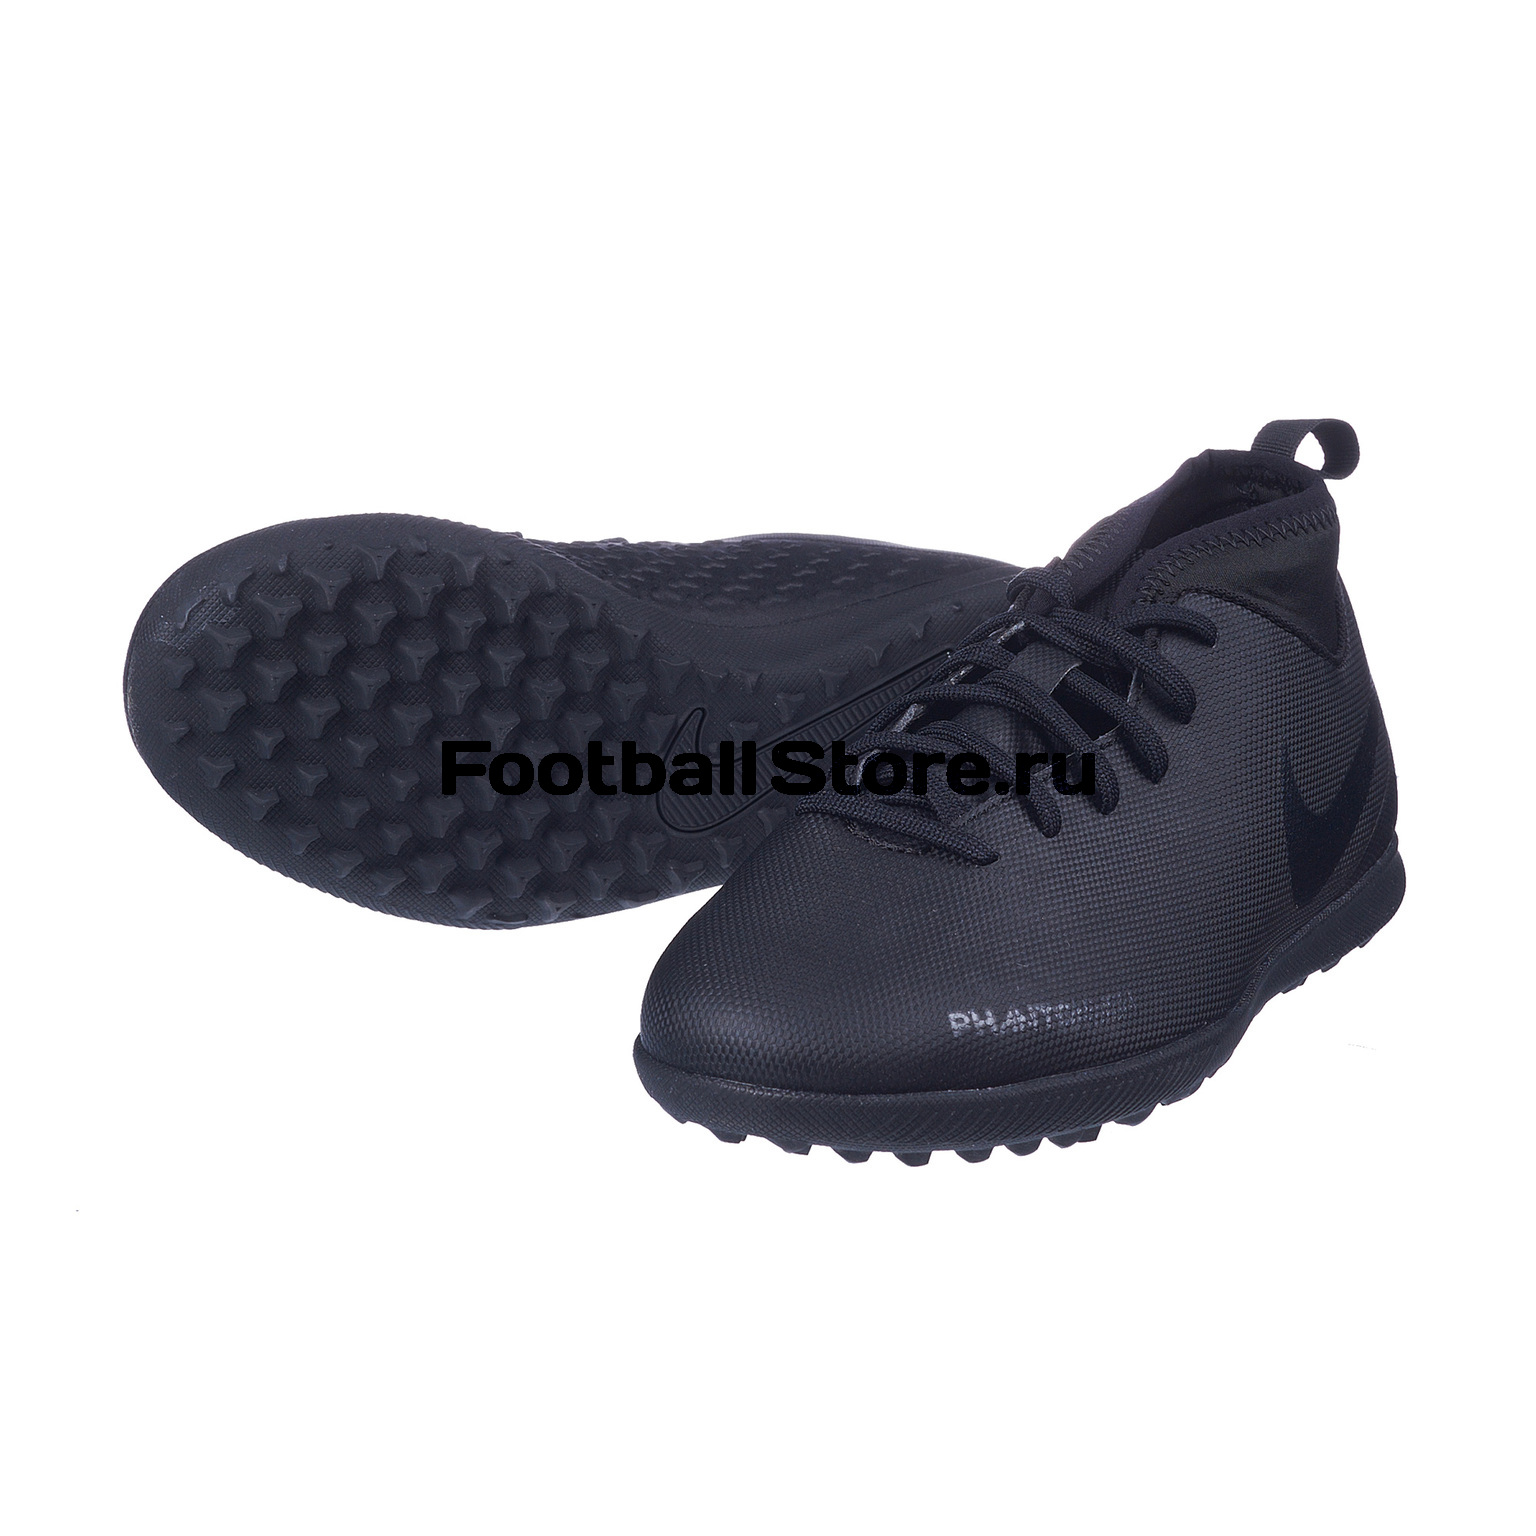 Шиповки детские Nike Phantom Vision Club DF TF AO3294-001 бутсы nike шиповки nike jr tiempox legend vi tf 819191 018